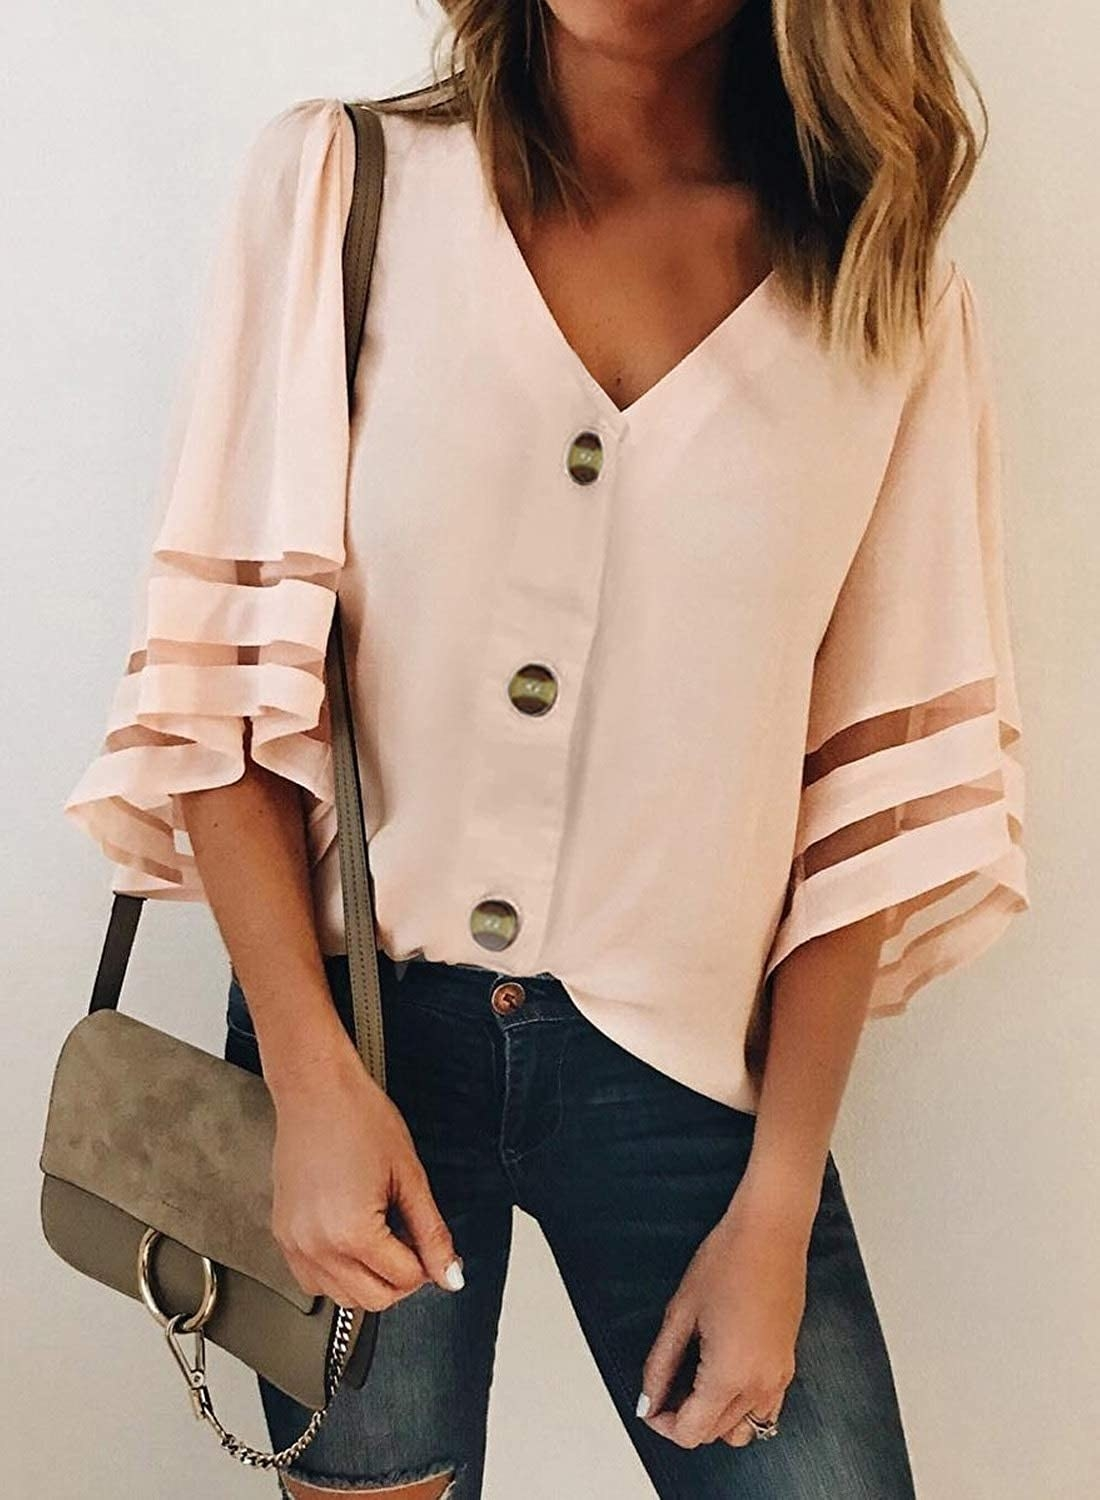 the top in Apricot